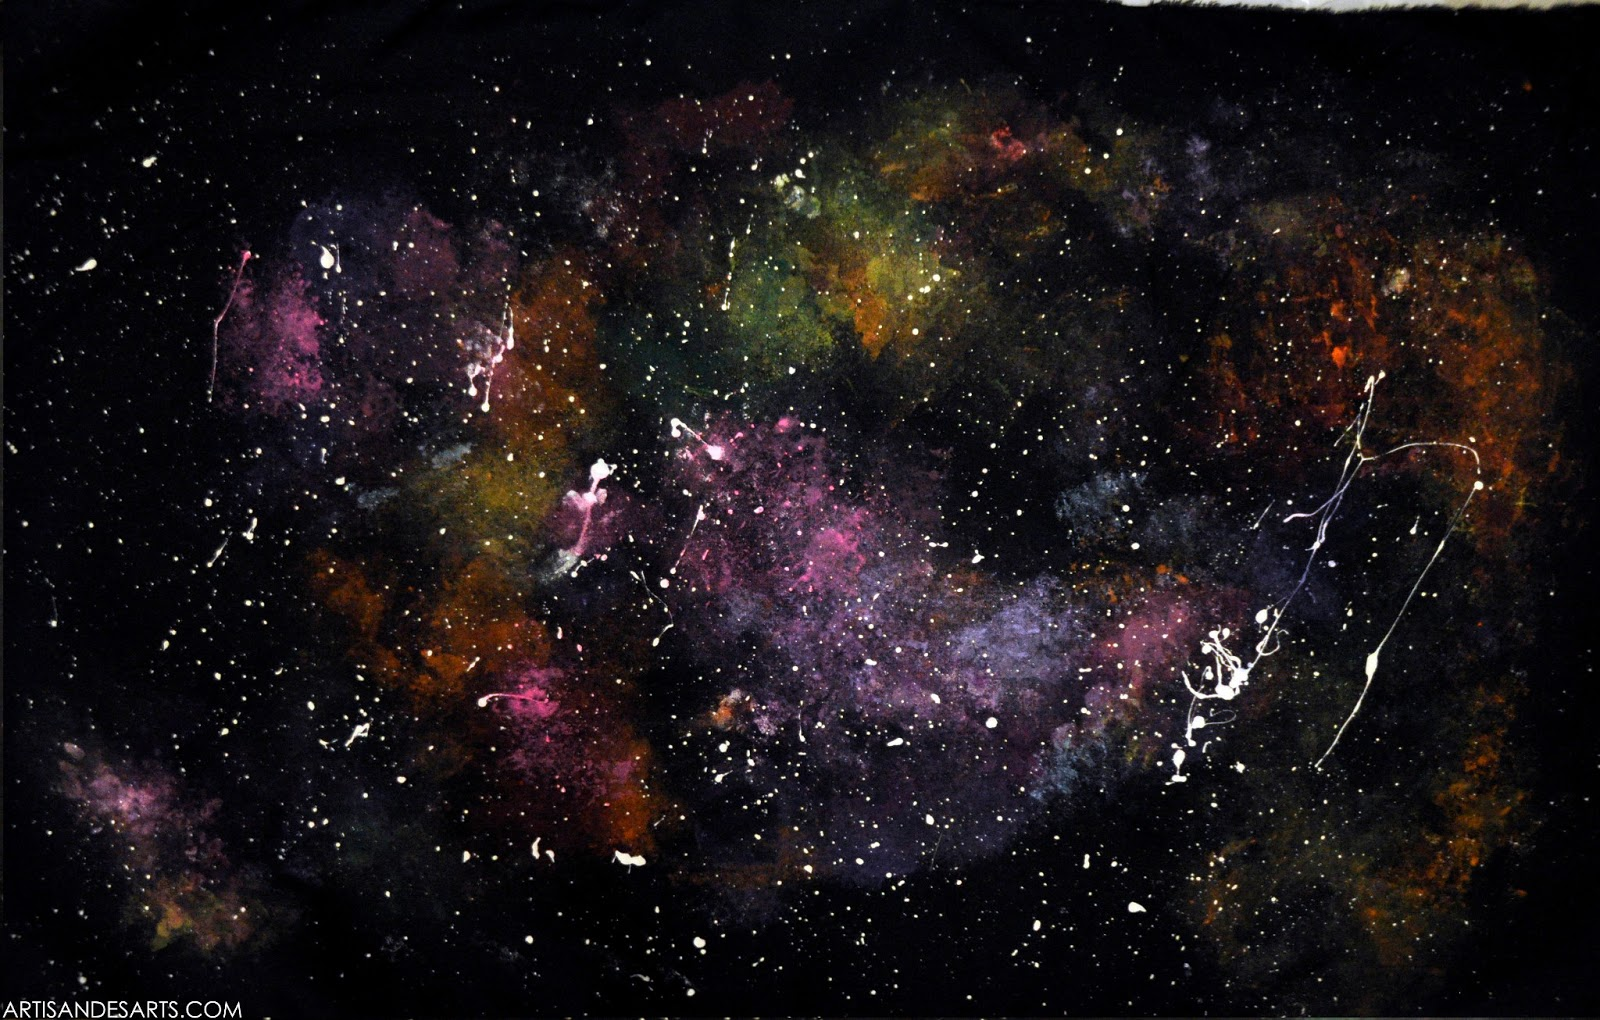 Artisan des arts outer space nebula galaxy paintings for Nebula material